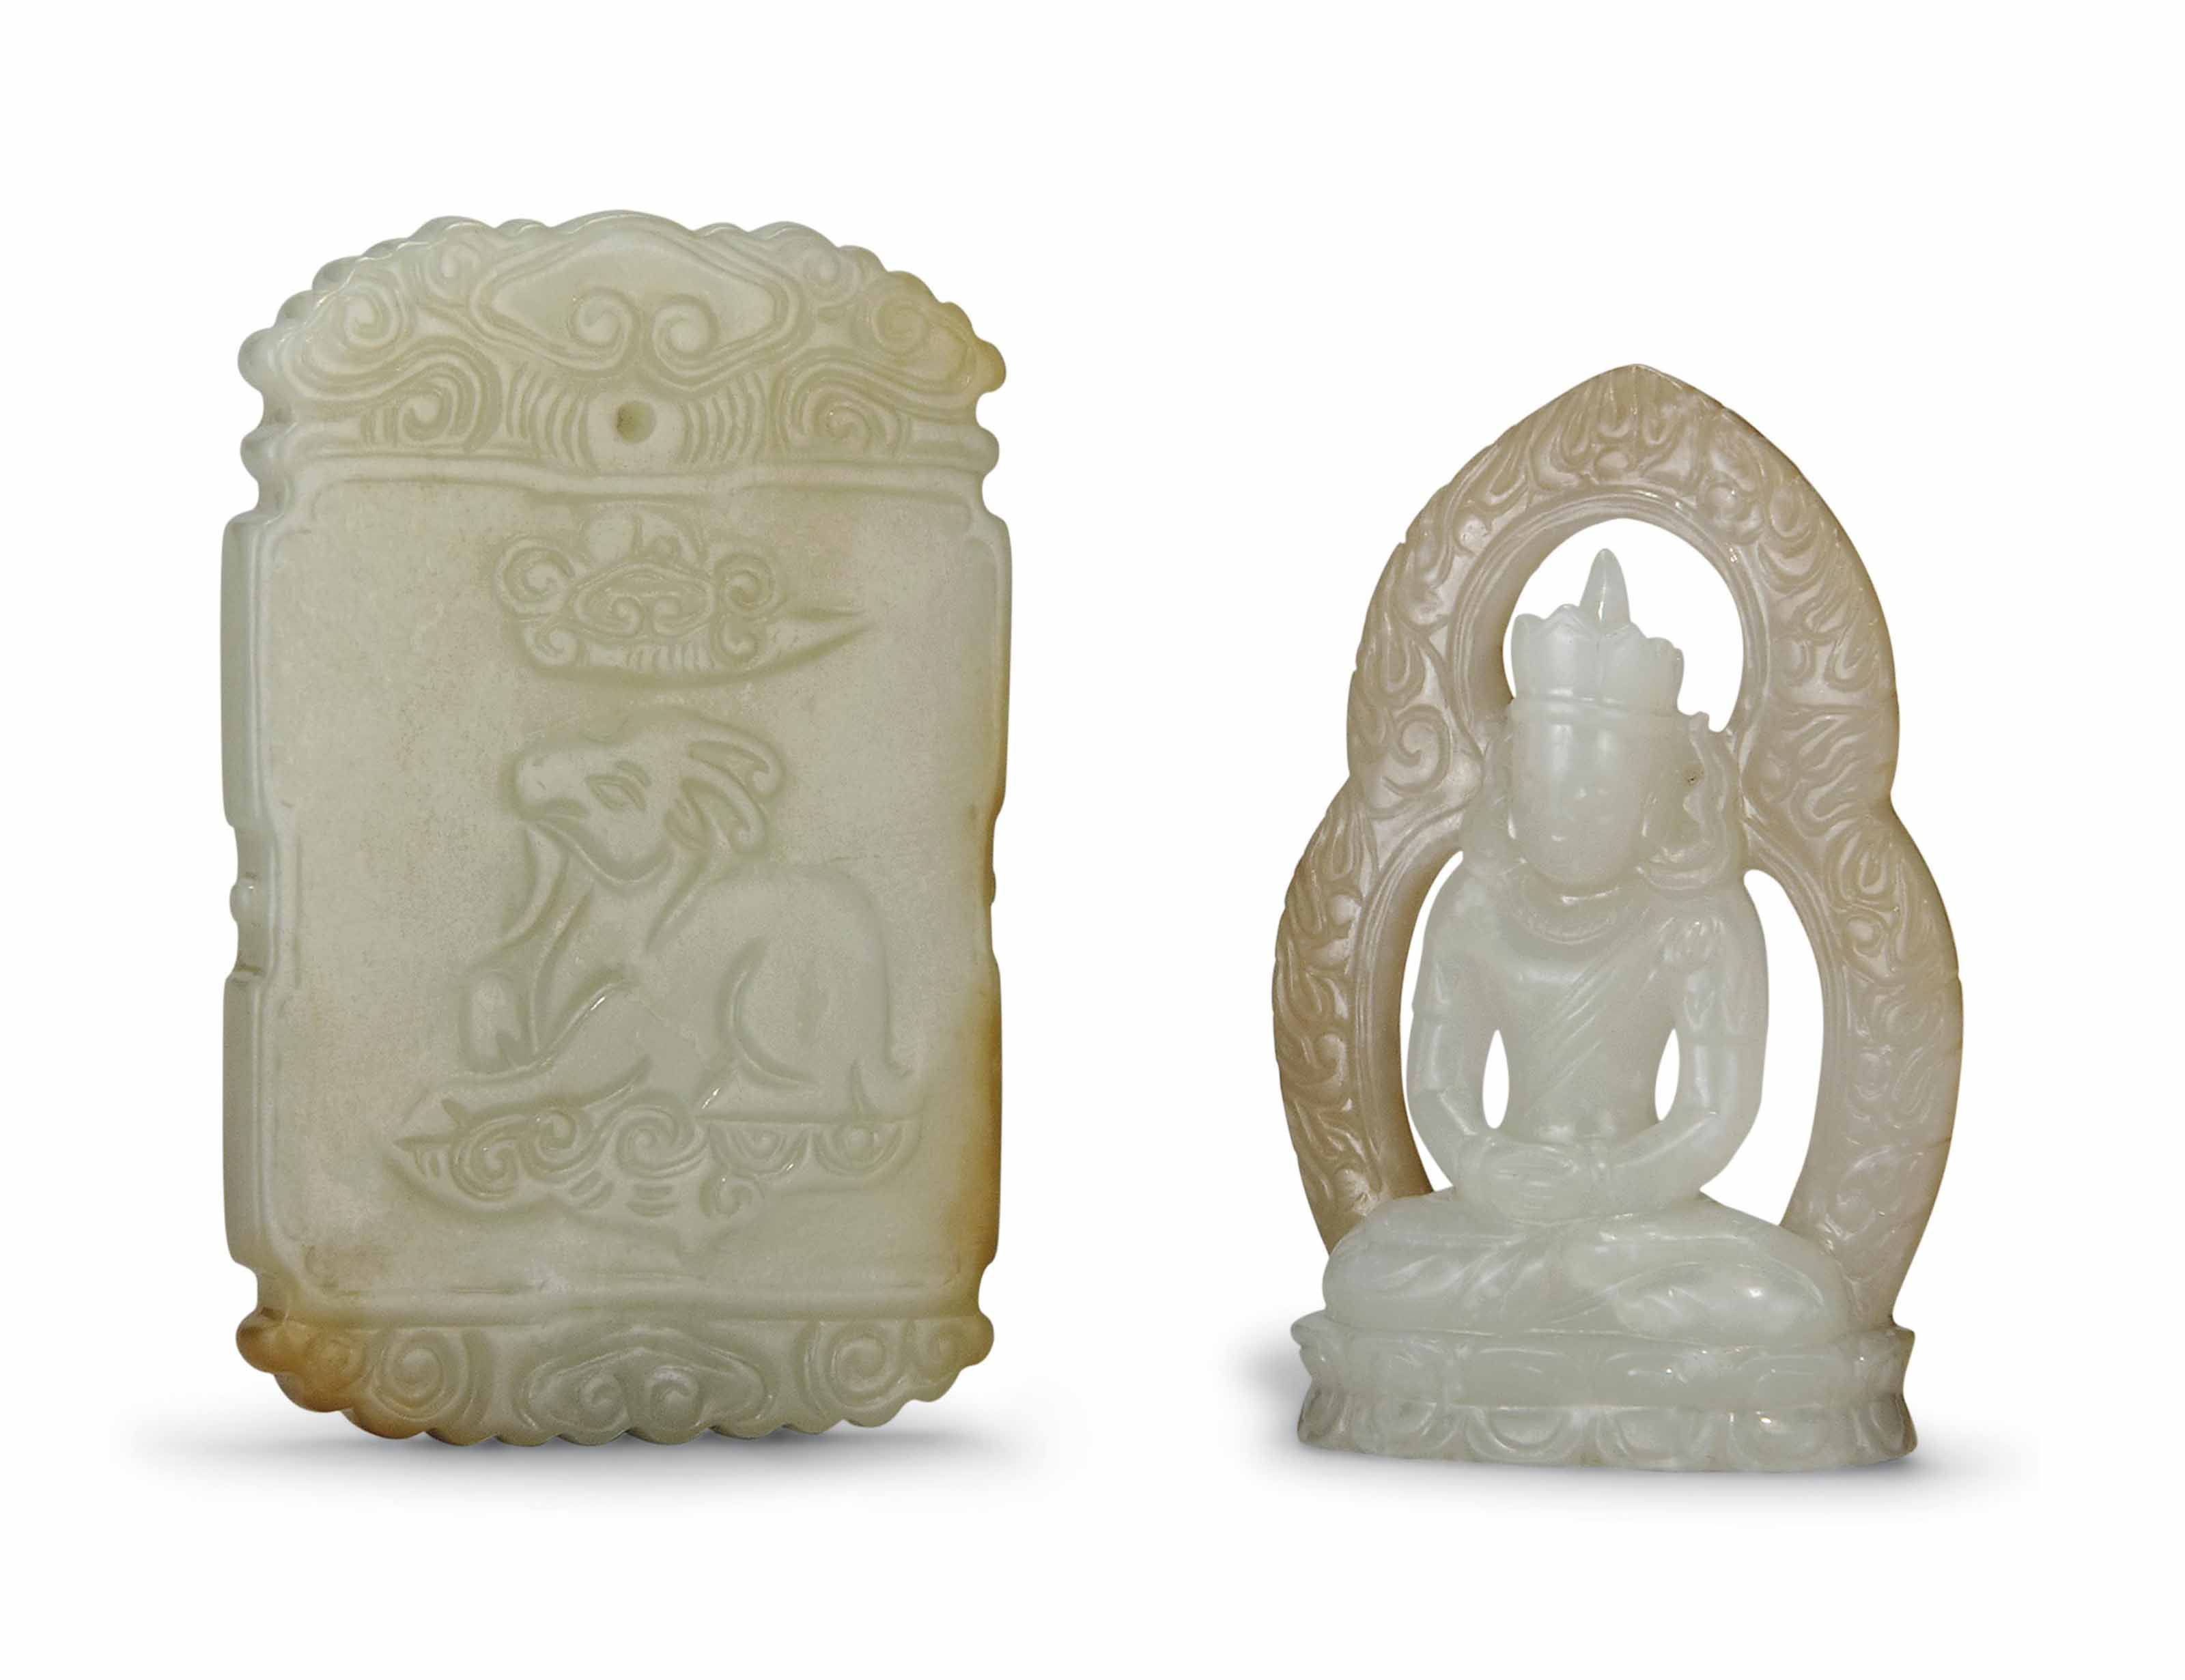 A WHITE AND RUSSET JADE SEATED